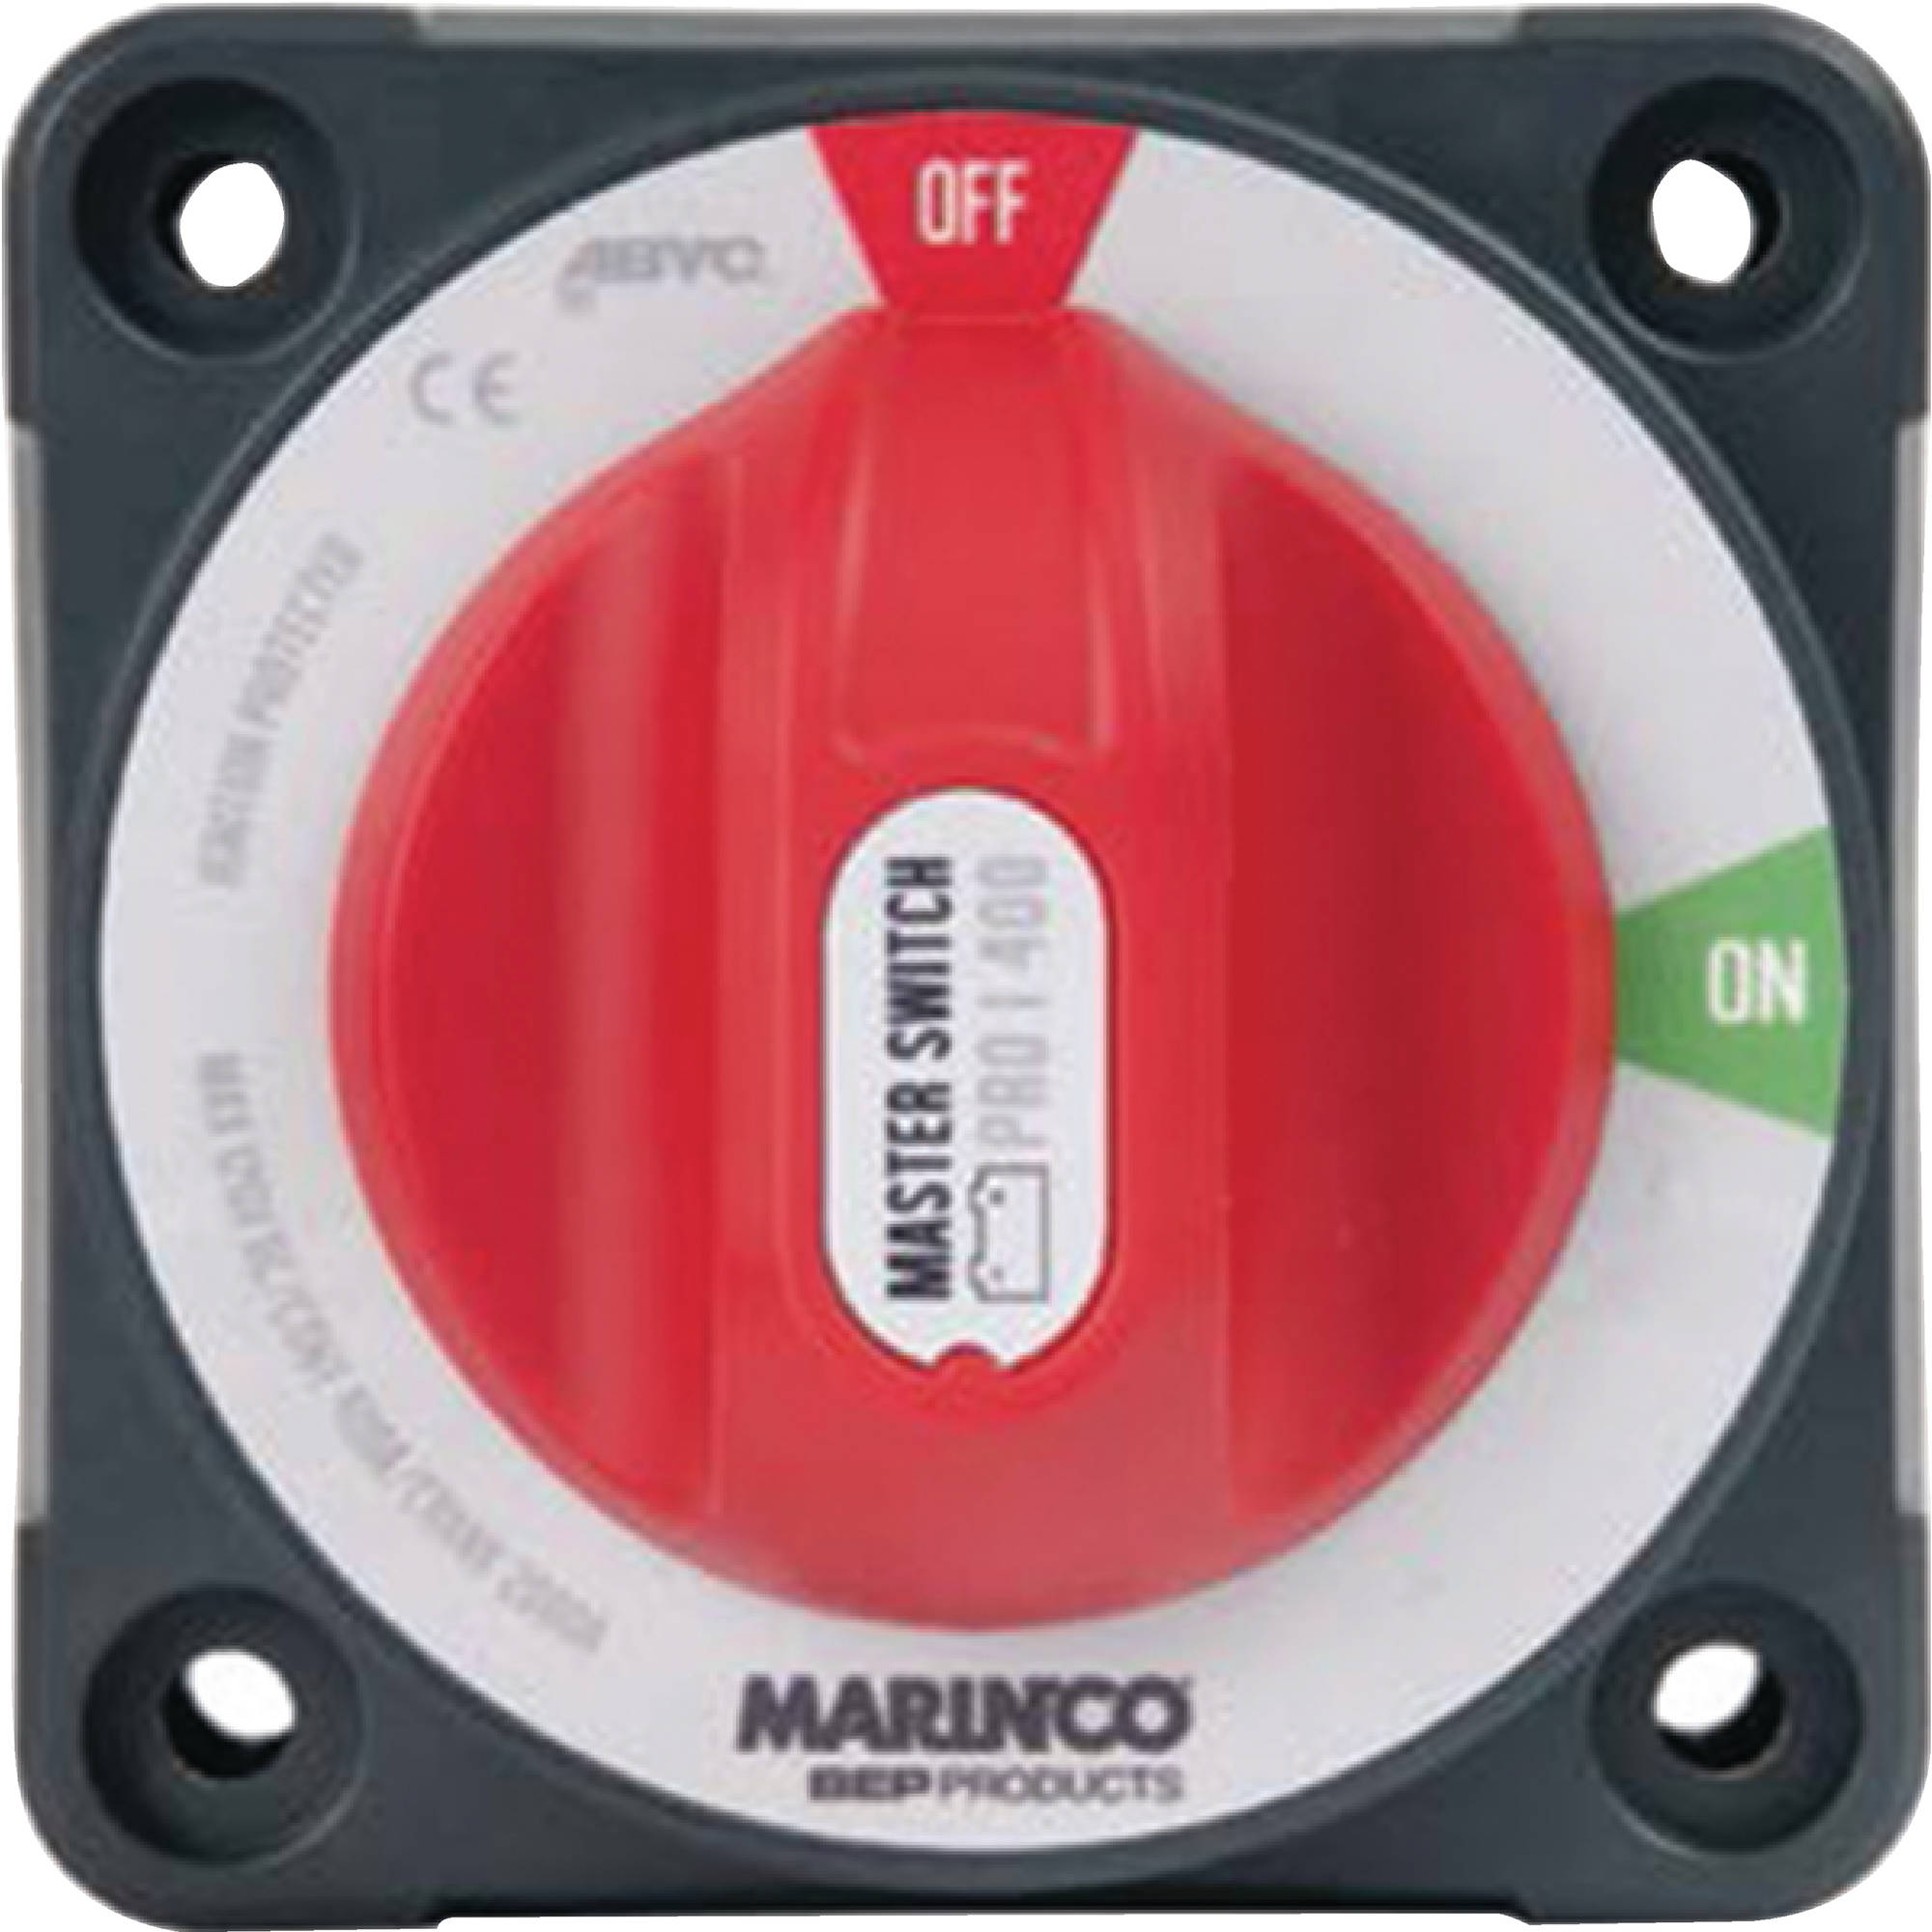 Marinco 770-DP Pro Installer Double Pole Medium Duty Battery Switch